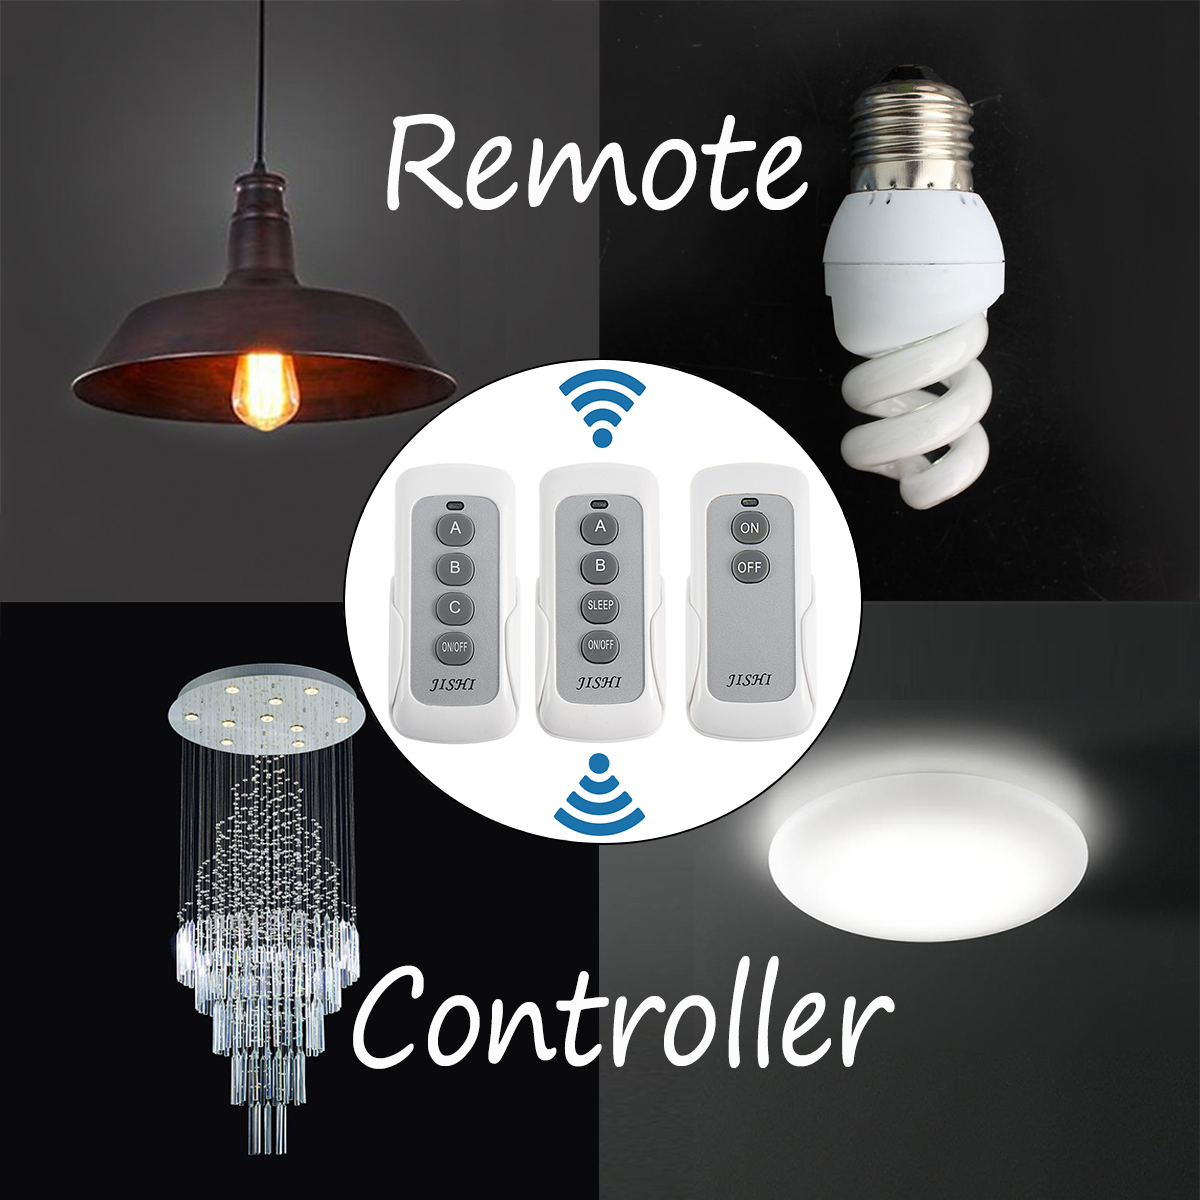 Ac180v240v Rf Remote Switch Controller Wireless About 3way Digital Control Light Lamp On Off 1way 2way